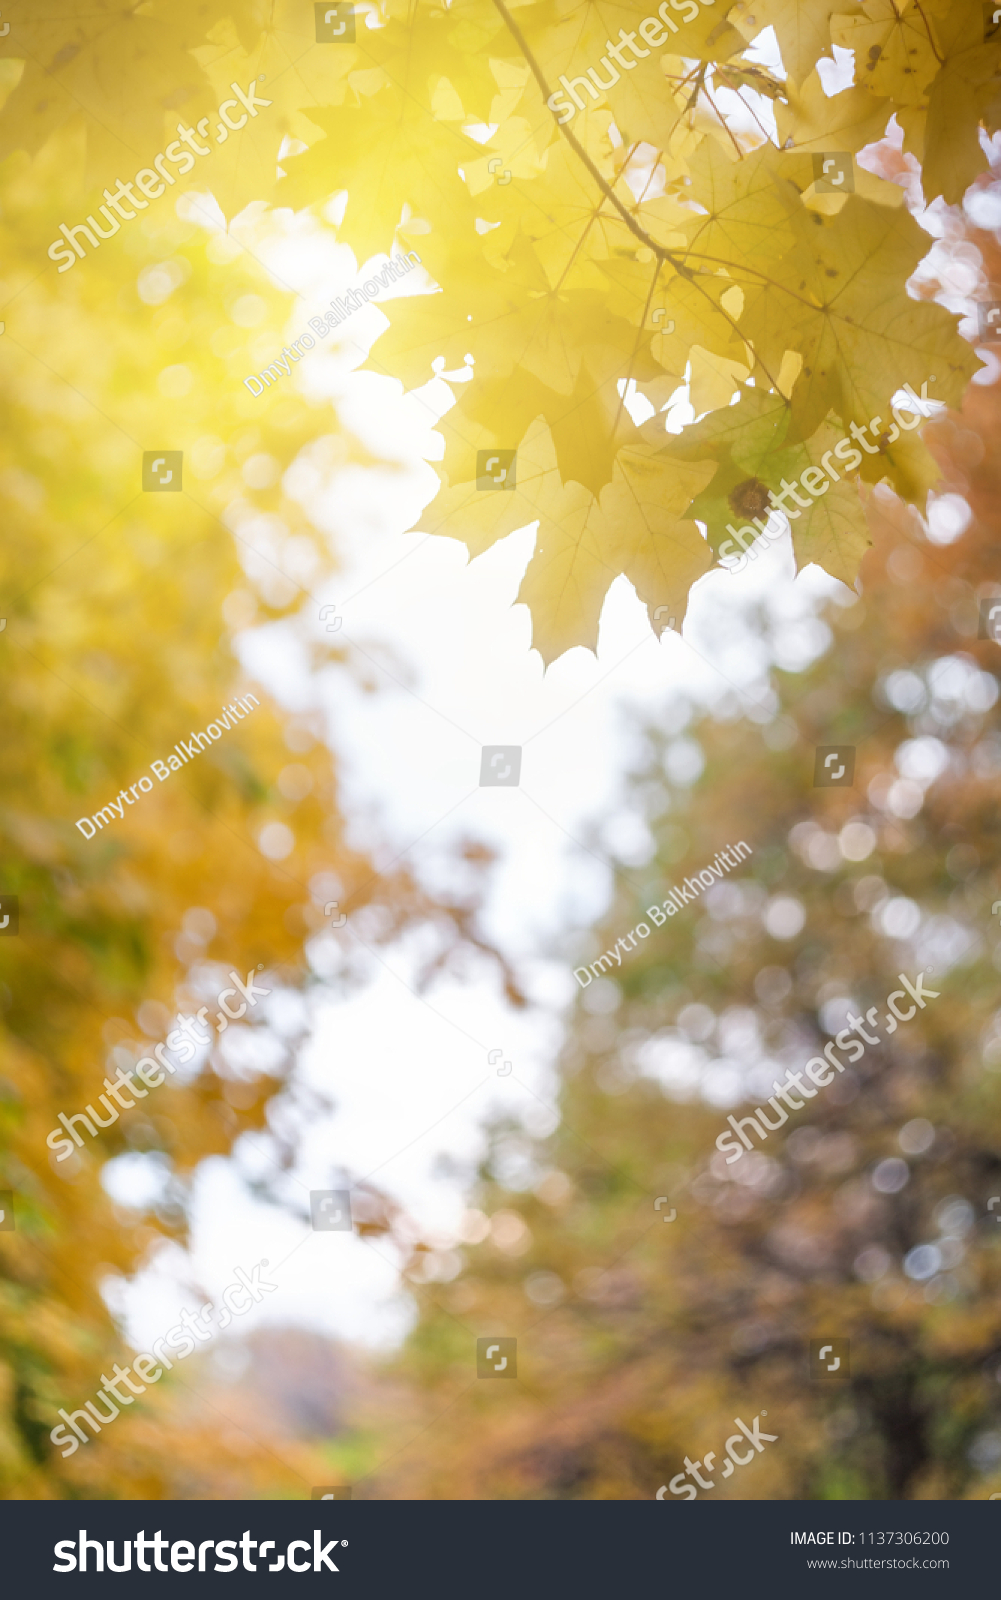 soft autumn background bright leaves nature stock photo (edit now